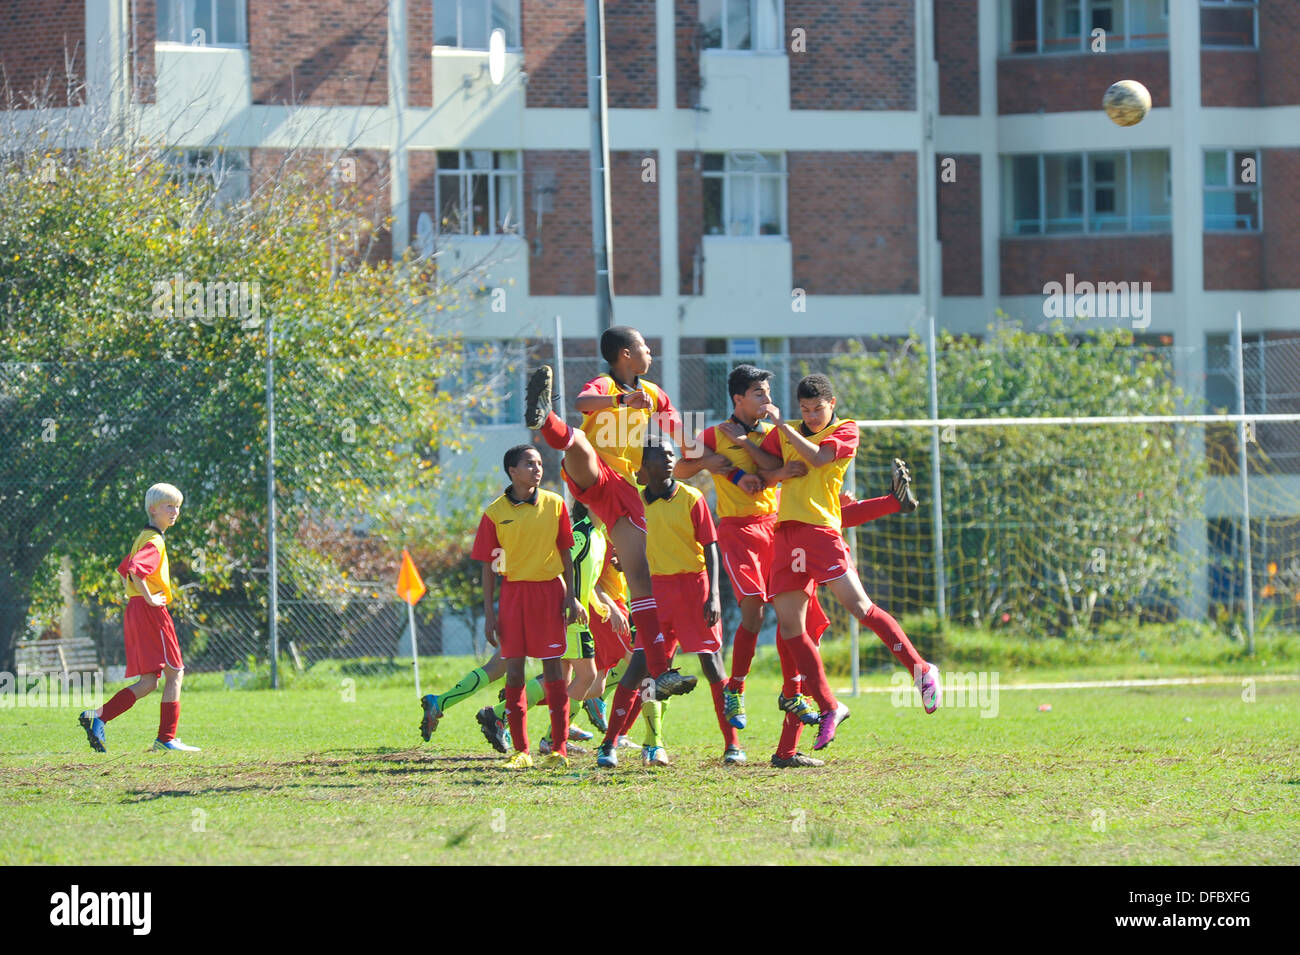 Junior football players jumping to head the ball, Cape Town, Western Cape, South Africa - Stock Image